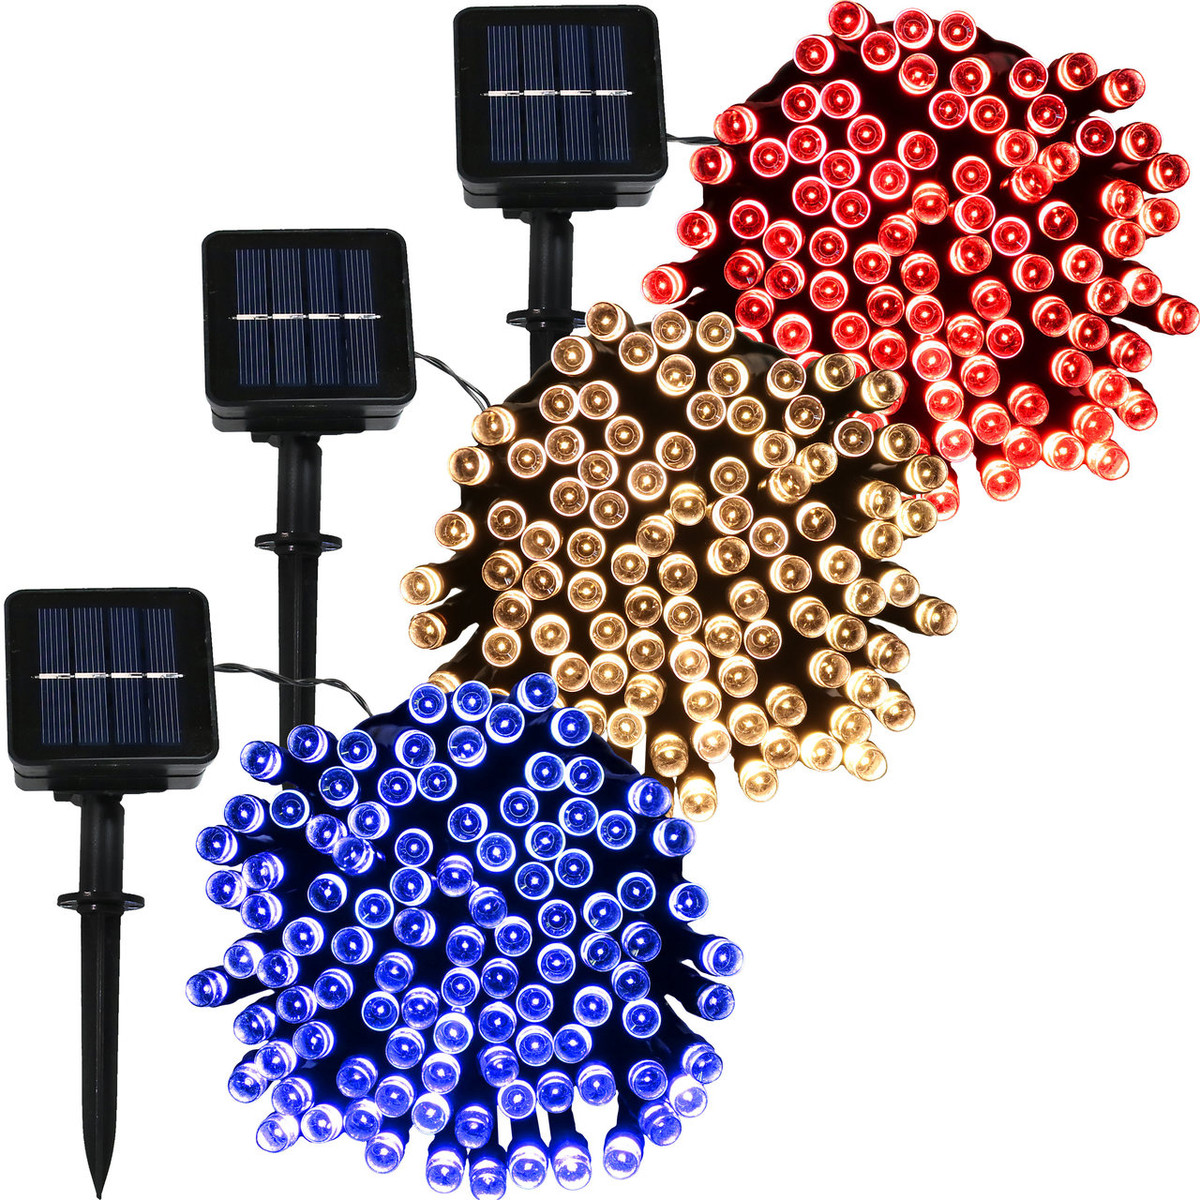 Sunnydaze Led Patrioticsolar Powered String Lights Outdoor